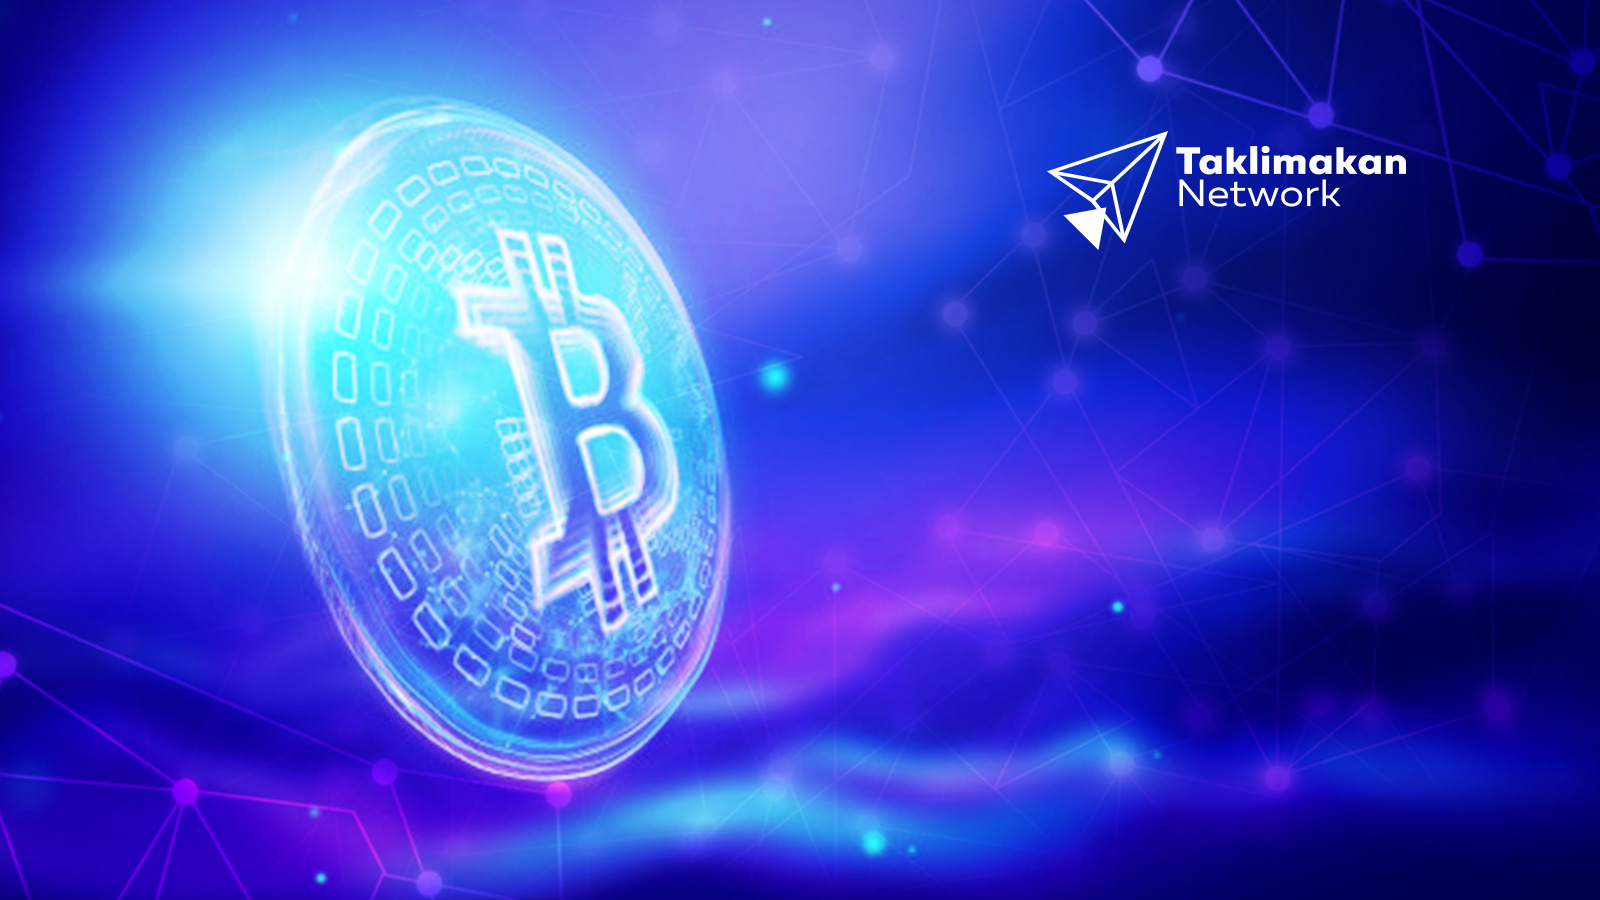 Platform taklimakan network launches